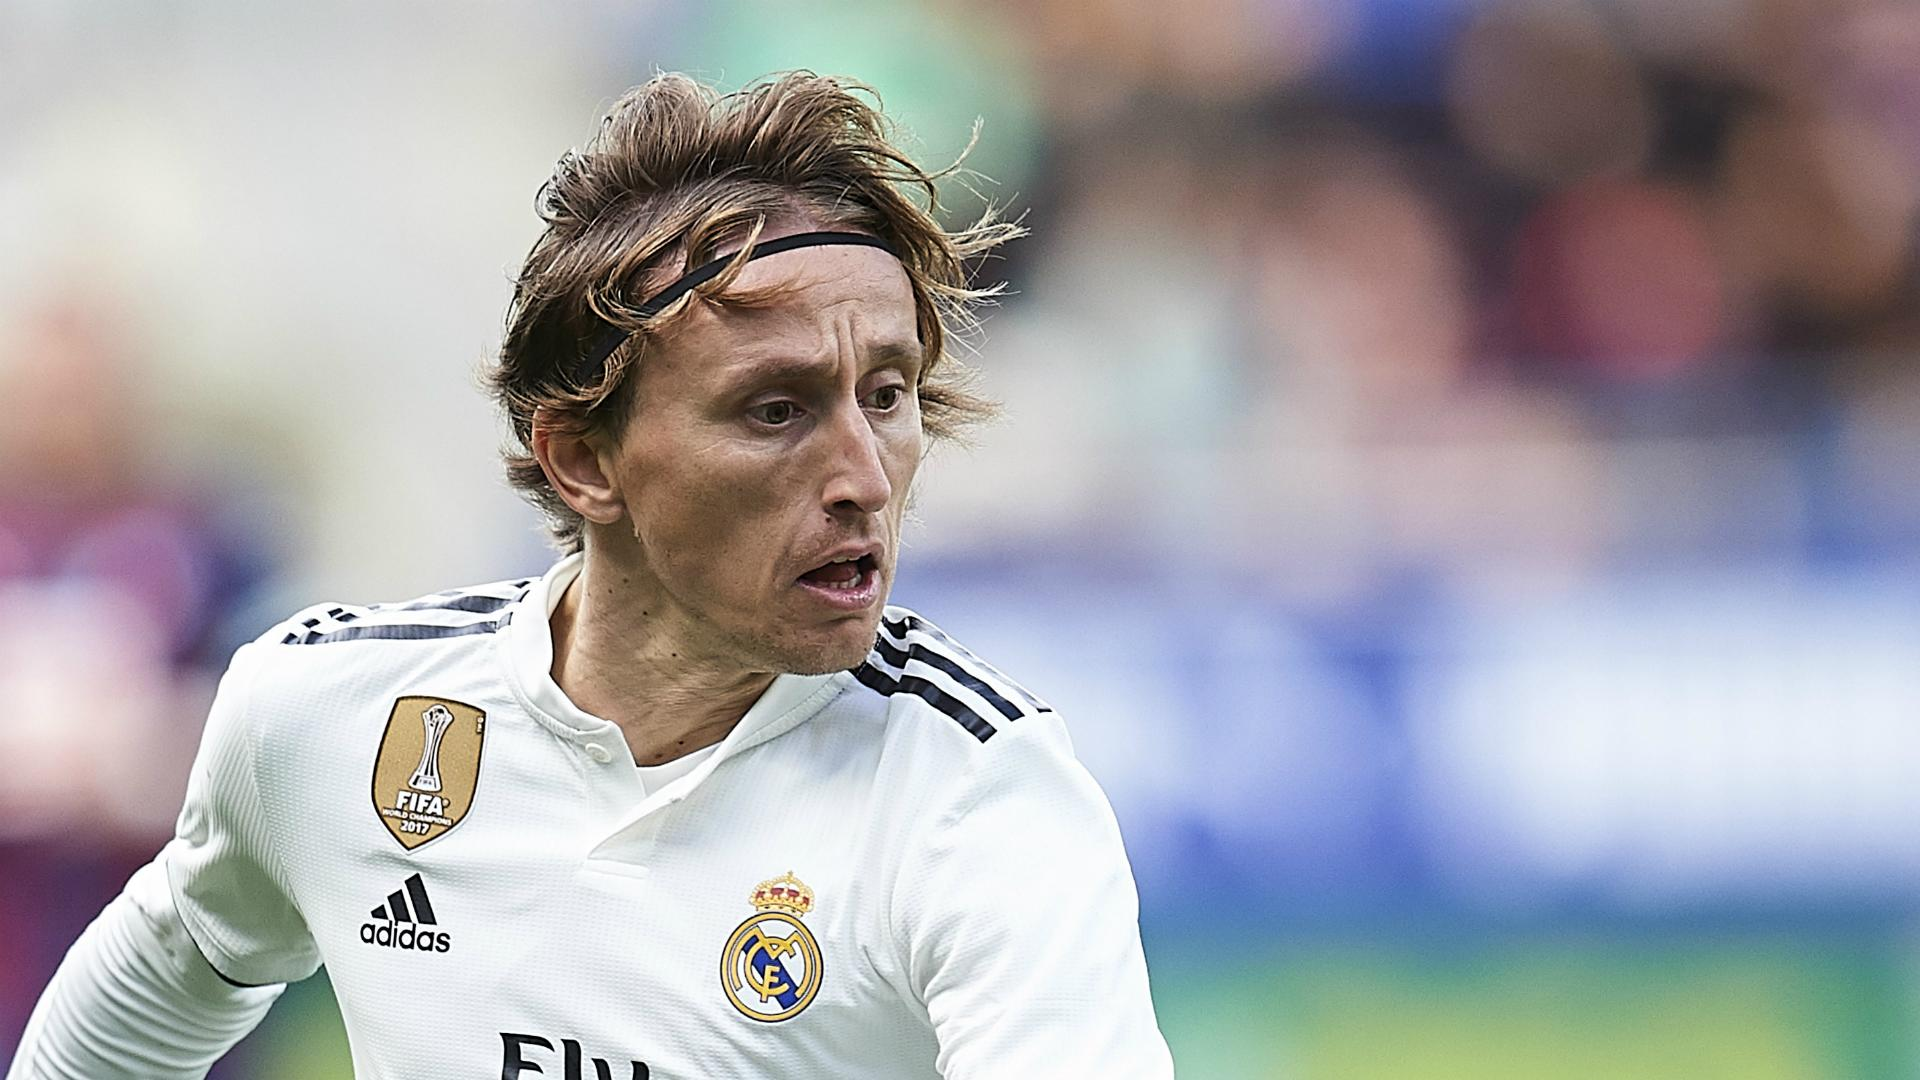 Luka Modric perjury charges dropped, court confirms